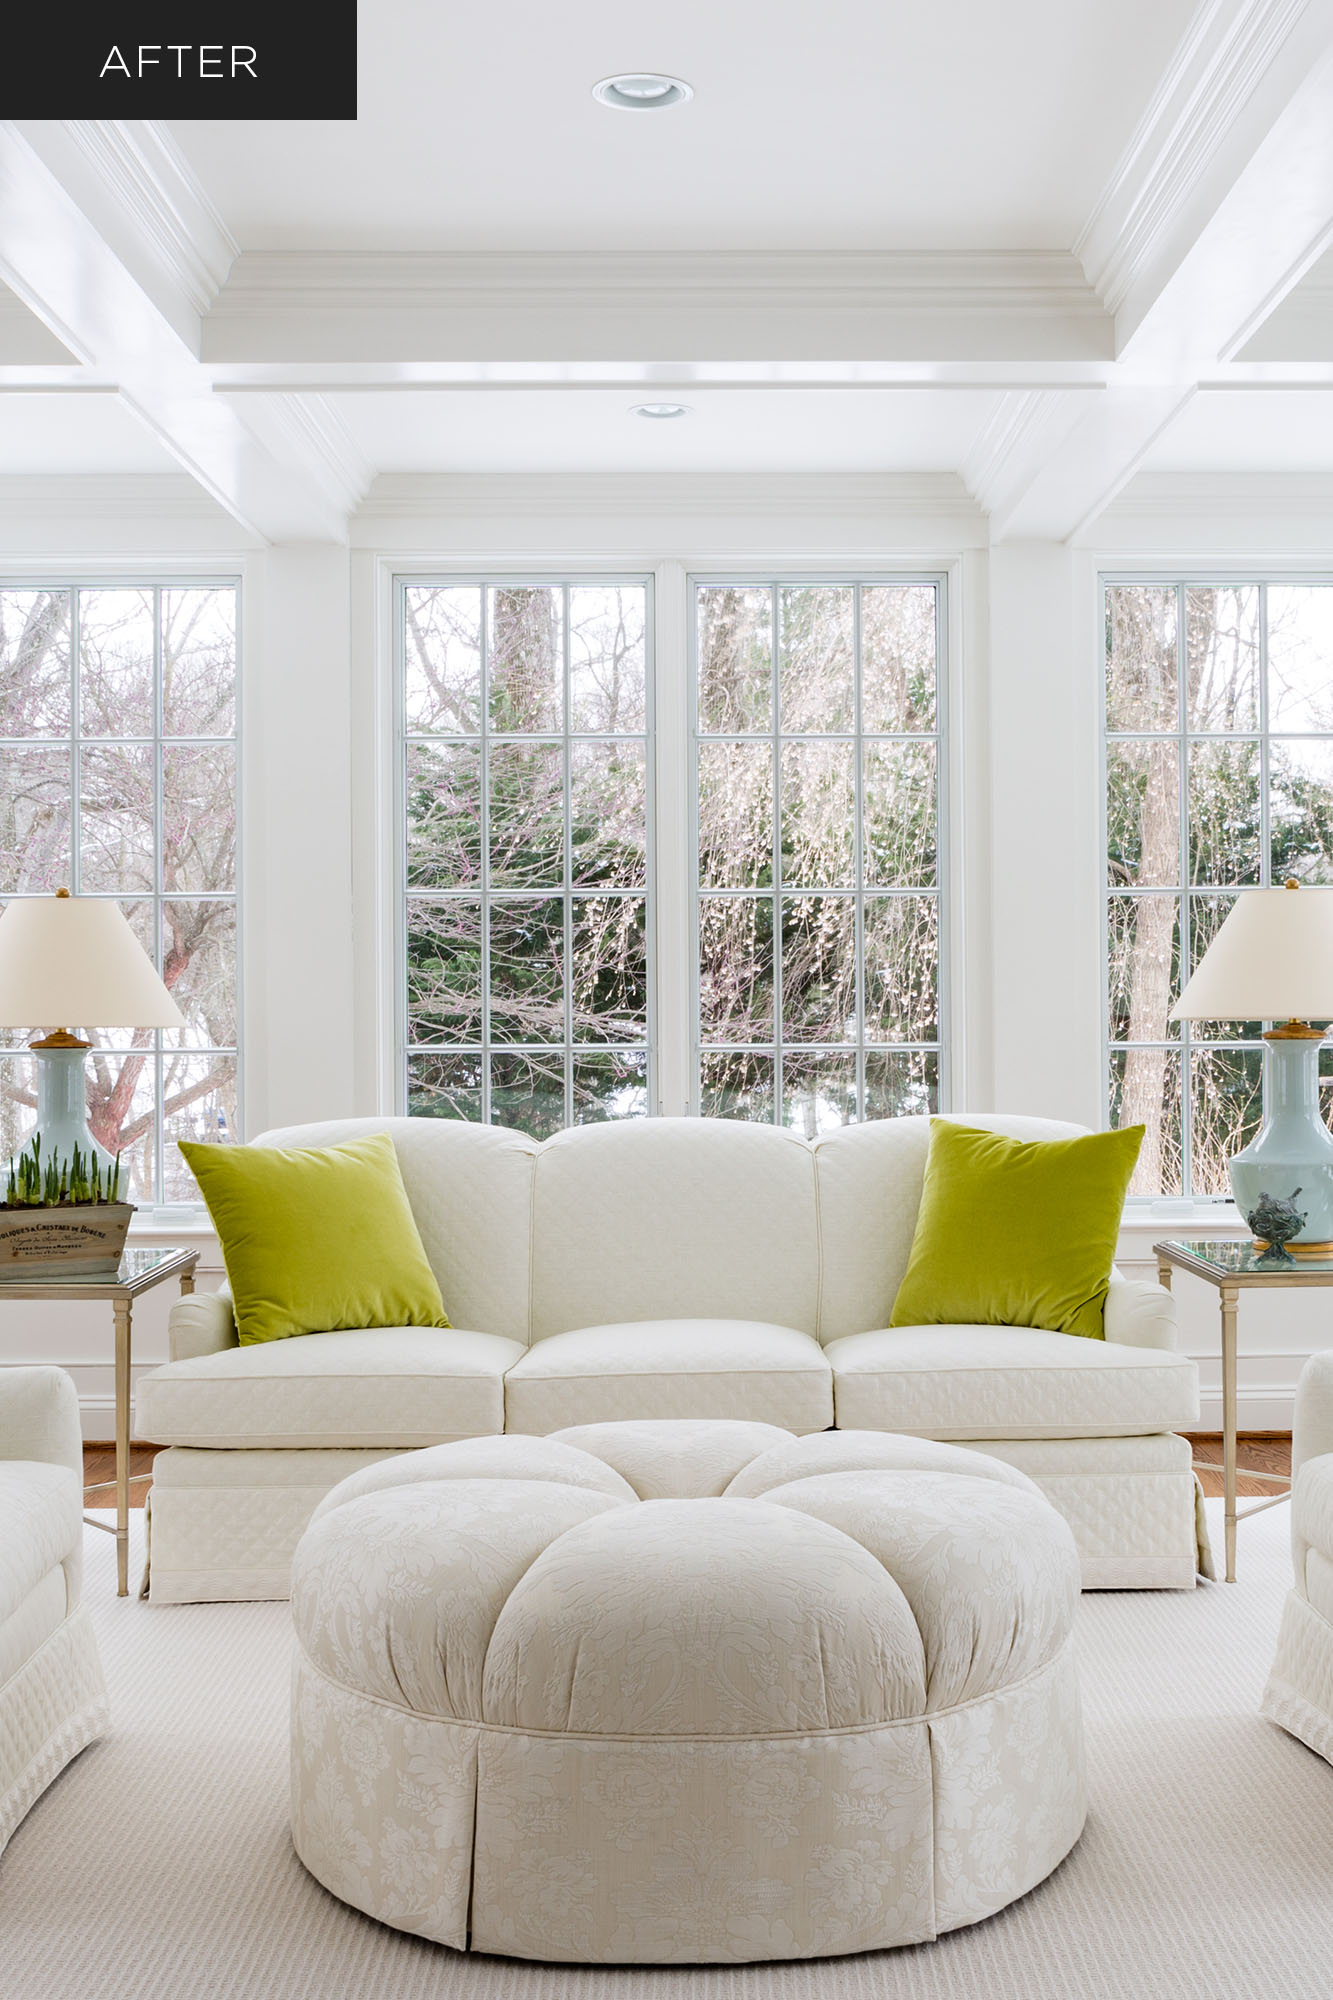 Home sunroom renovation with soffit ceiling, white furniture, white windowpanes and view of snowy landscape